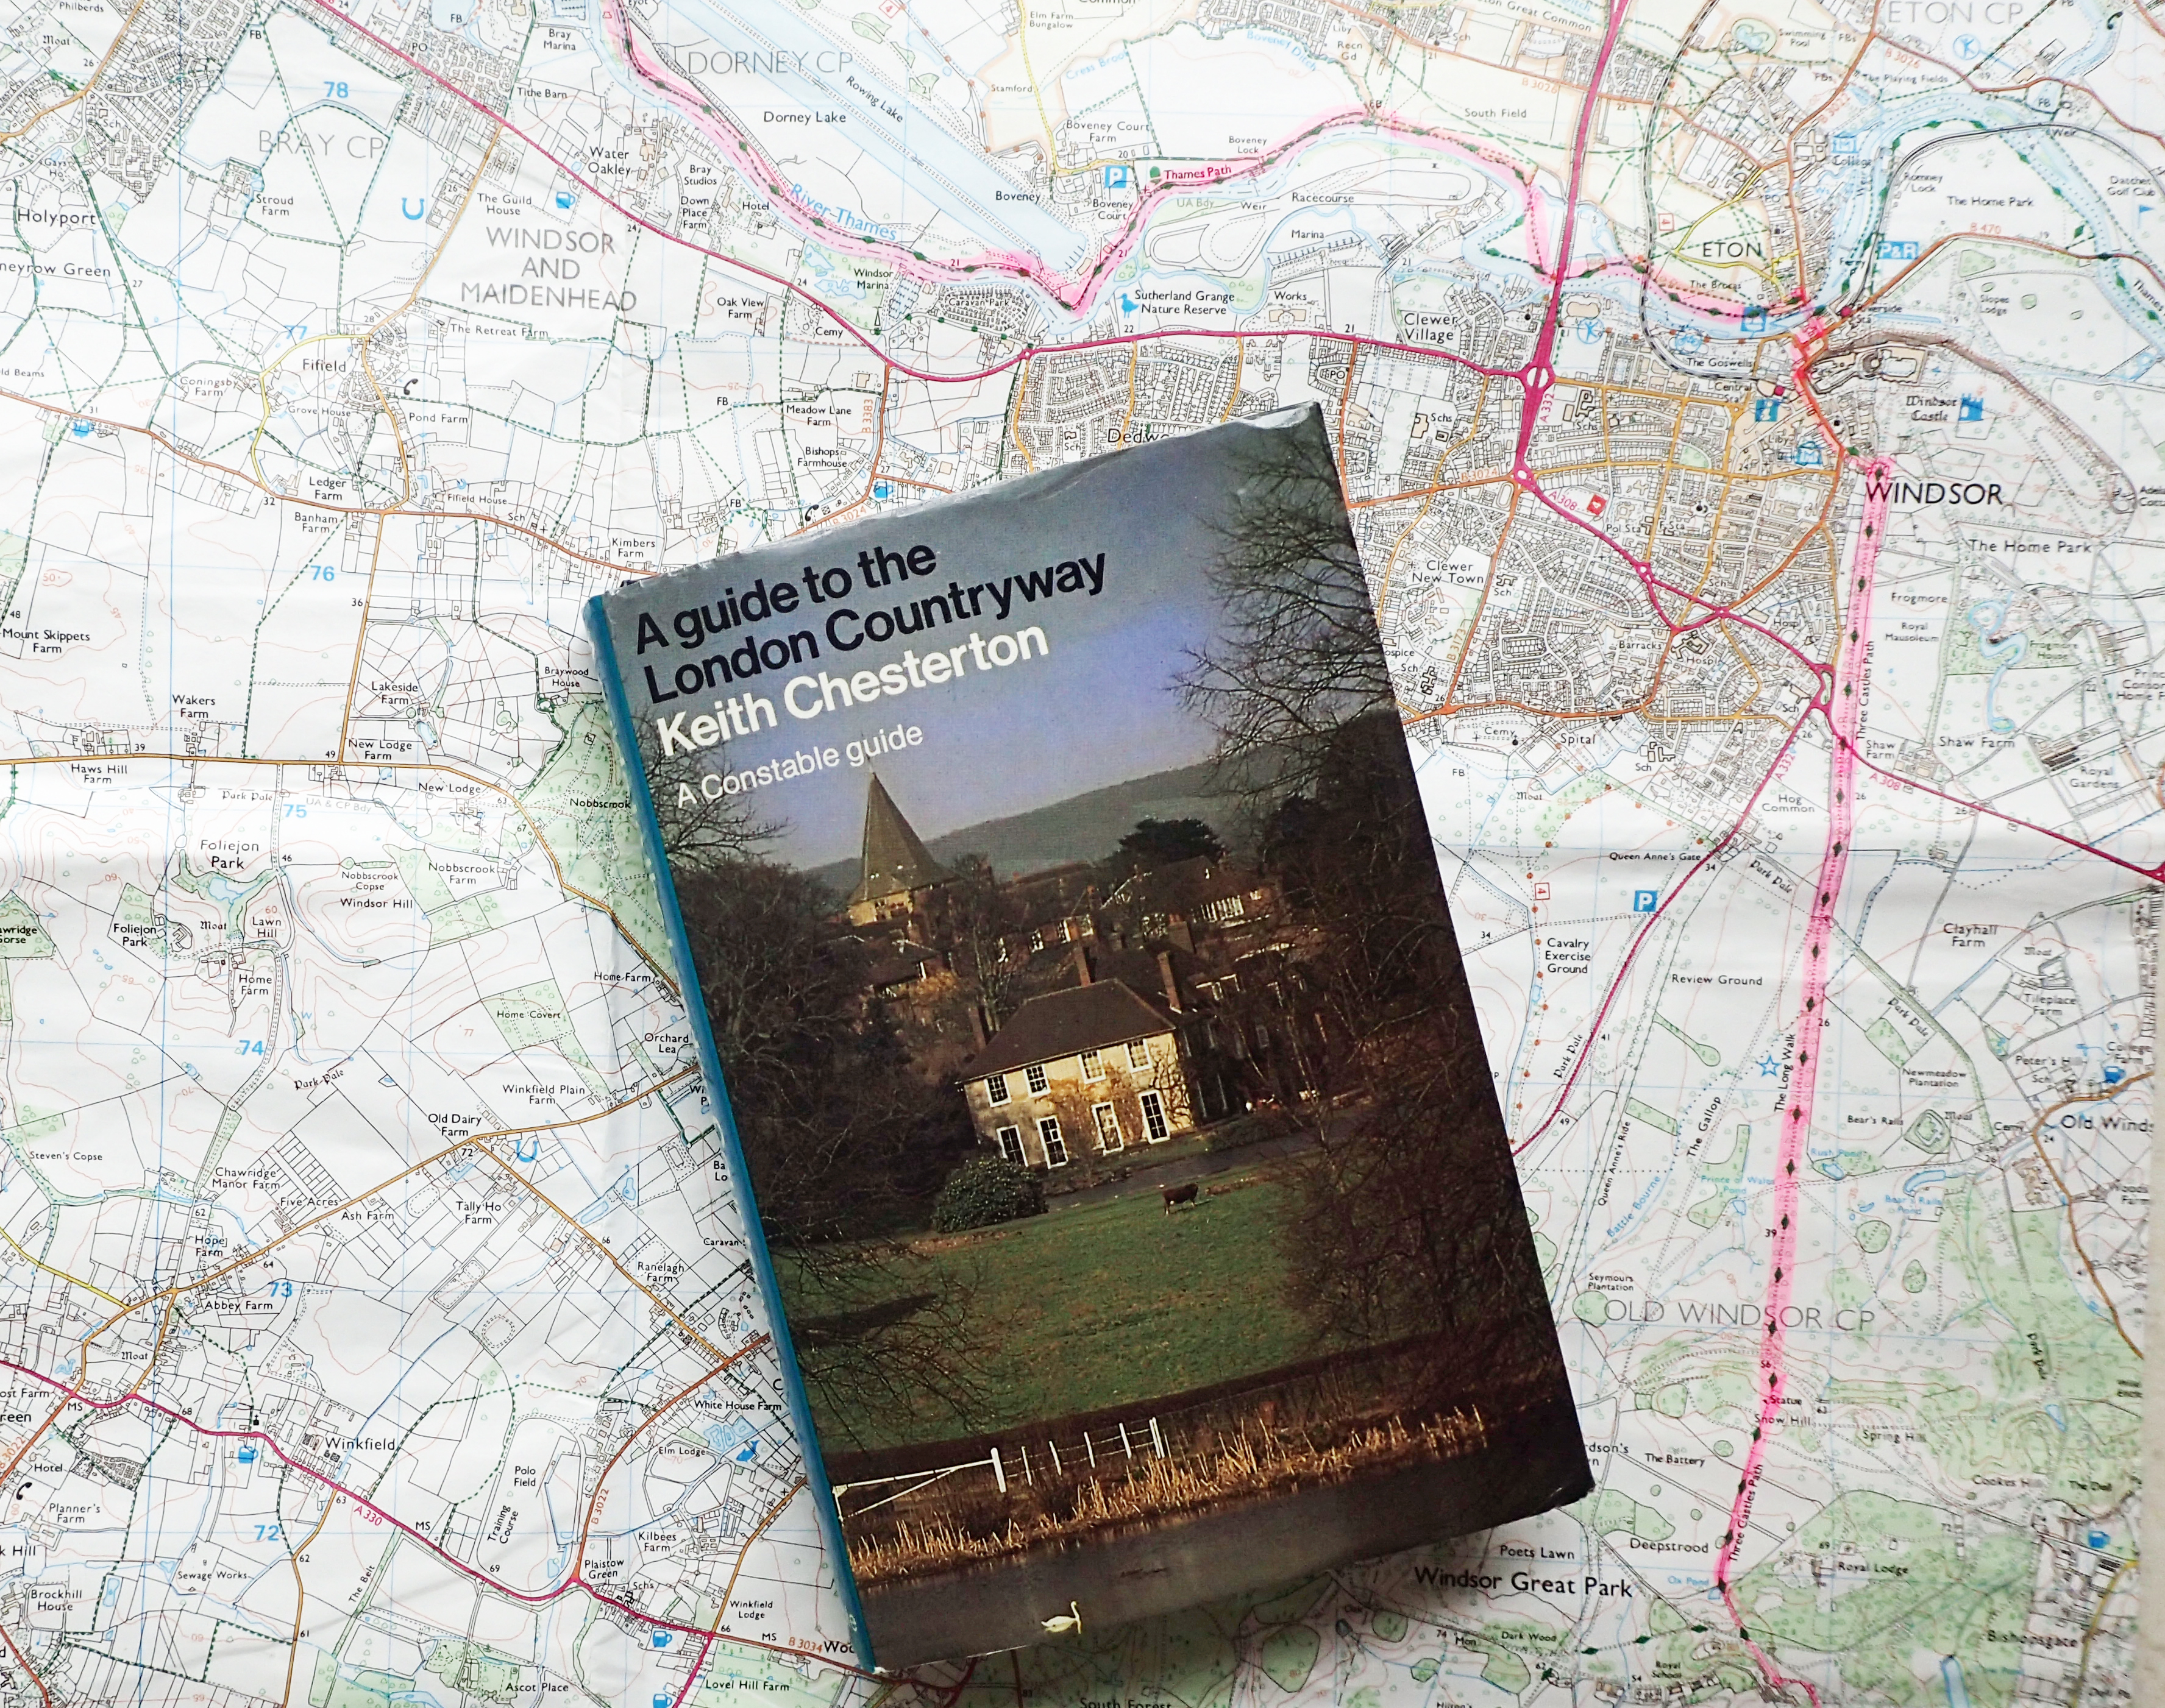 1981 edition of Keith Chesterton's A guide to the London Countryway with OS Explorer sheet 160, covering Windsor, Weybridge & Bracknell